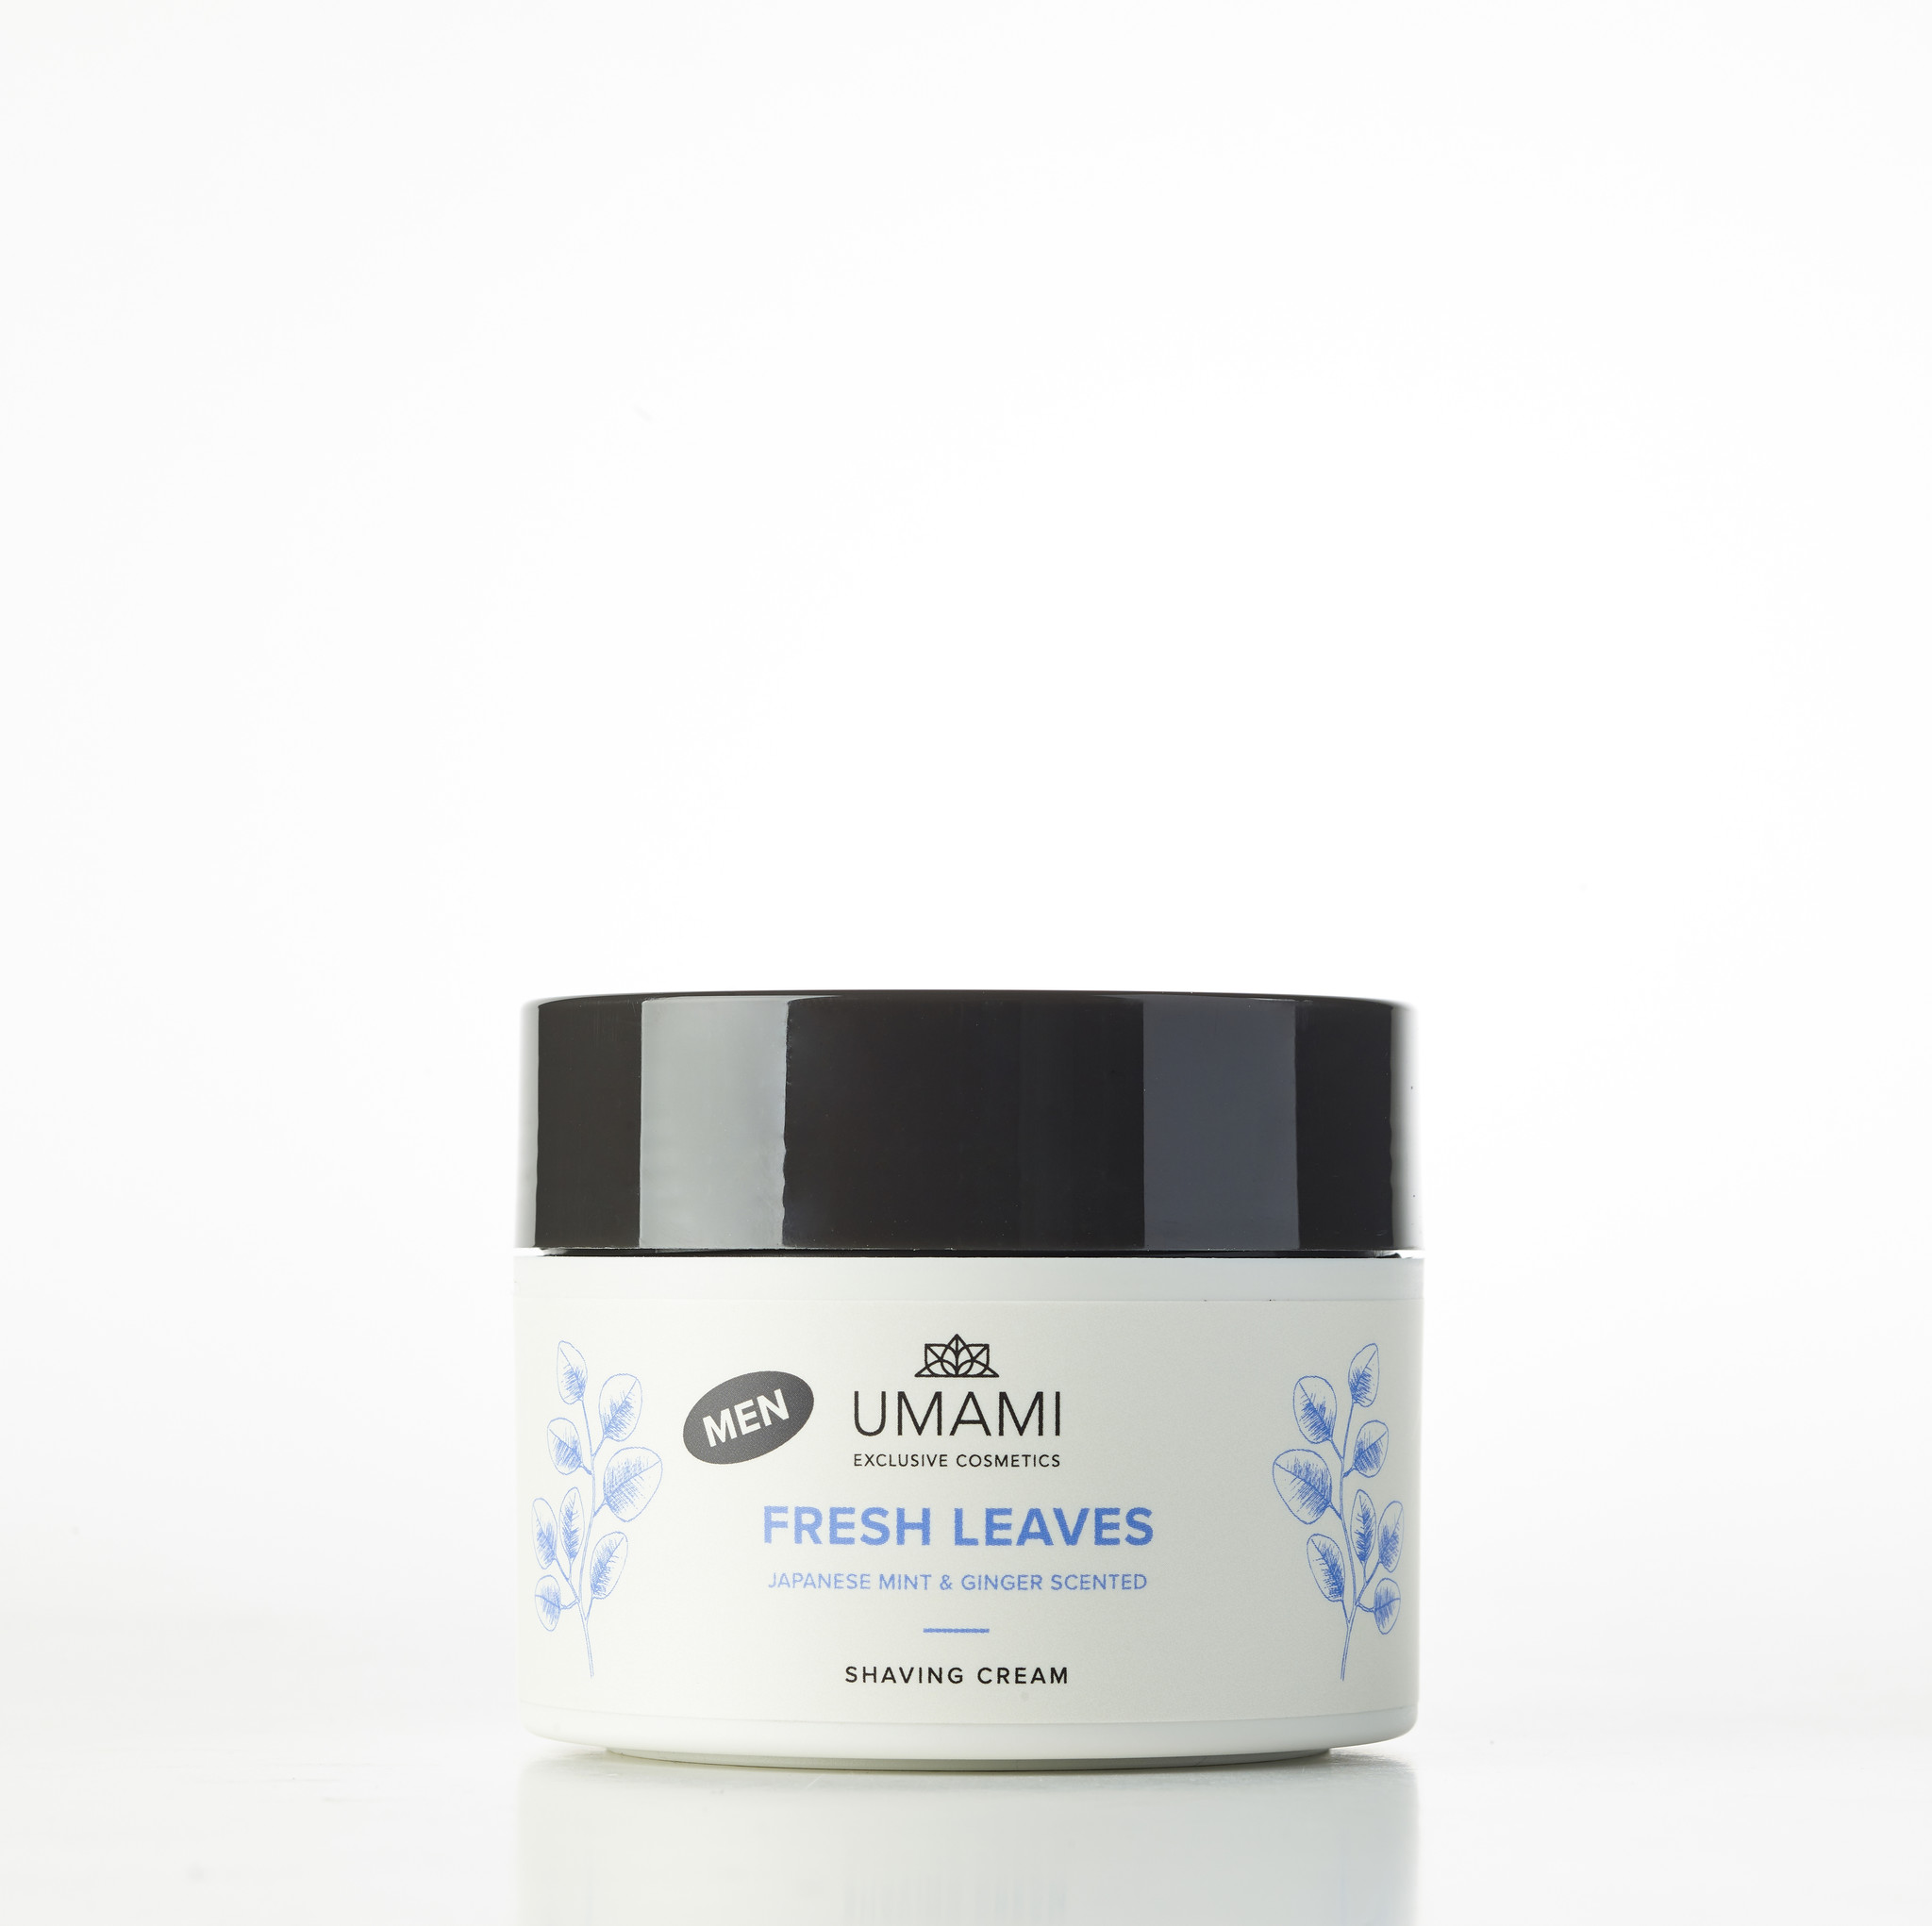 UMAMI Shaving Cream Fresh Leaves 250ml